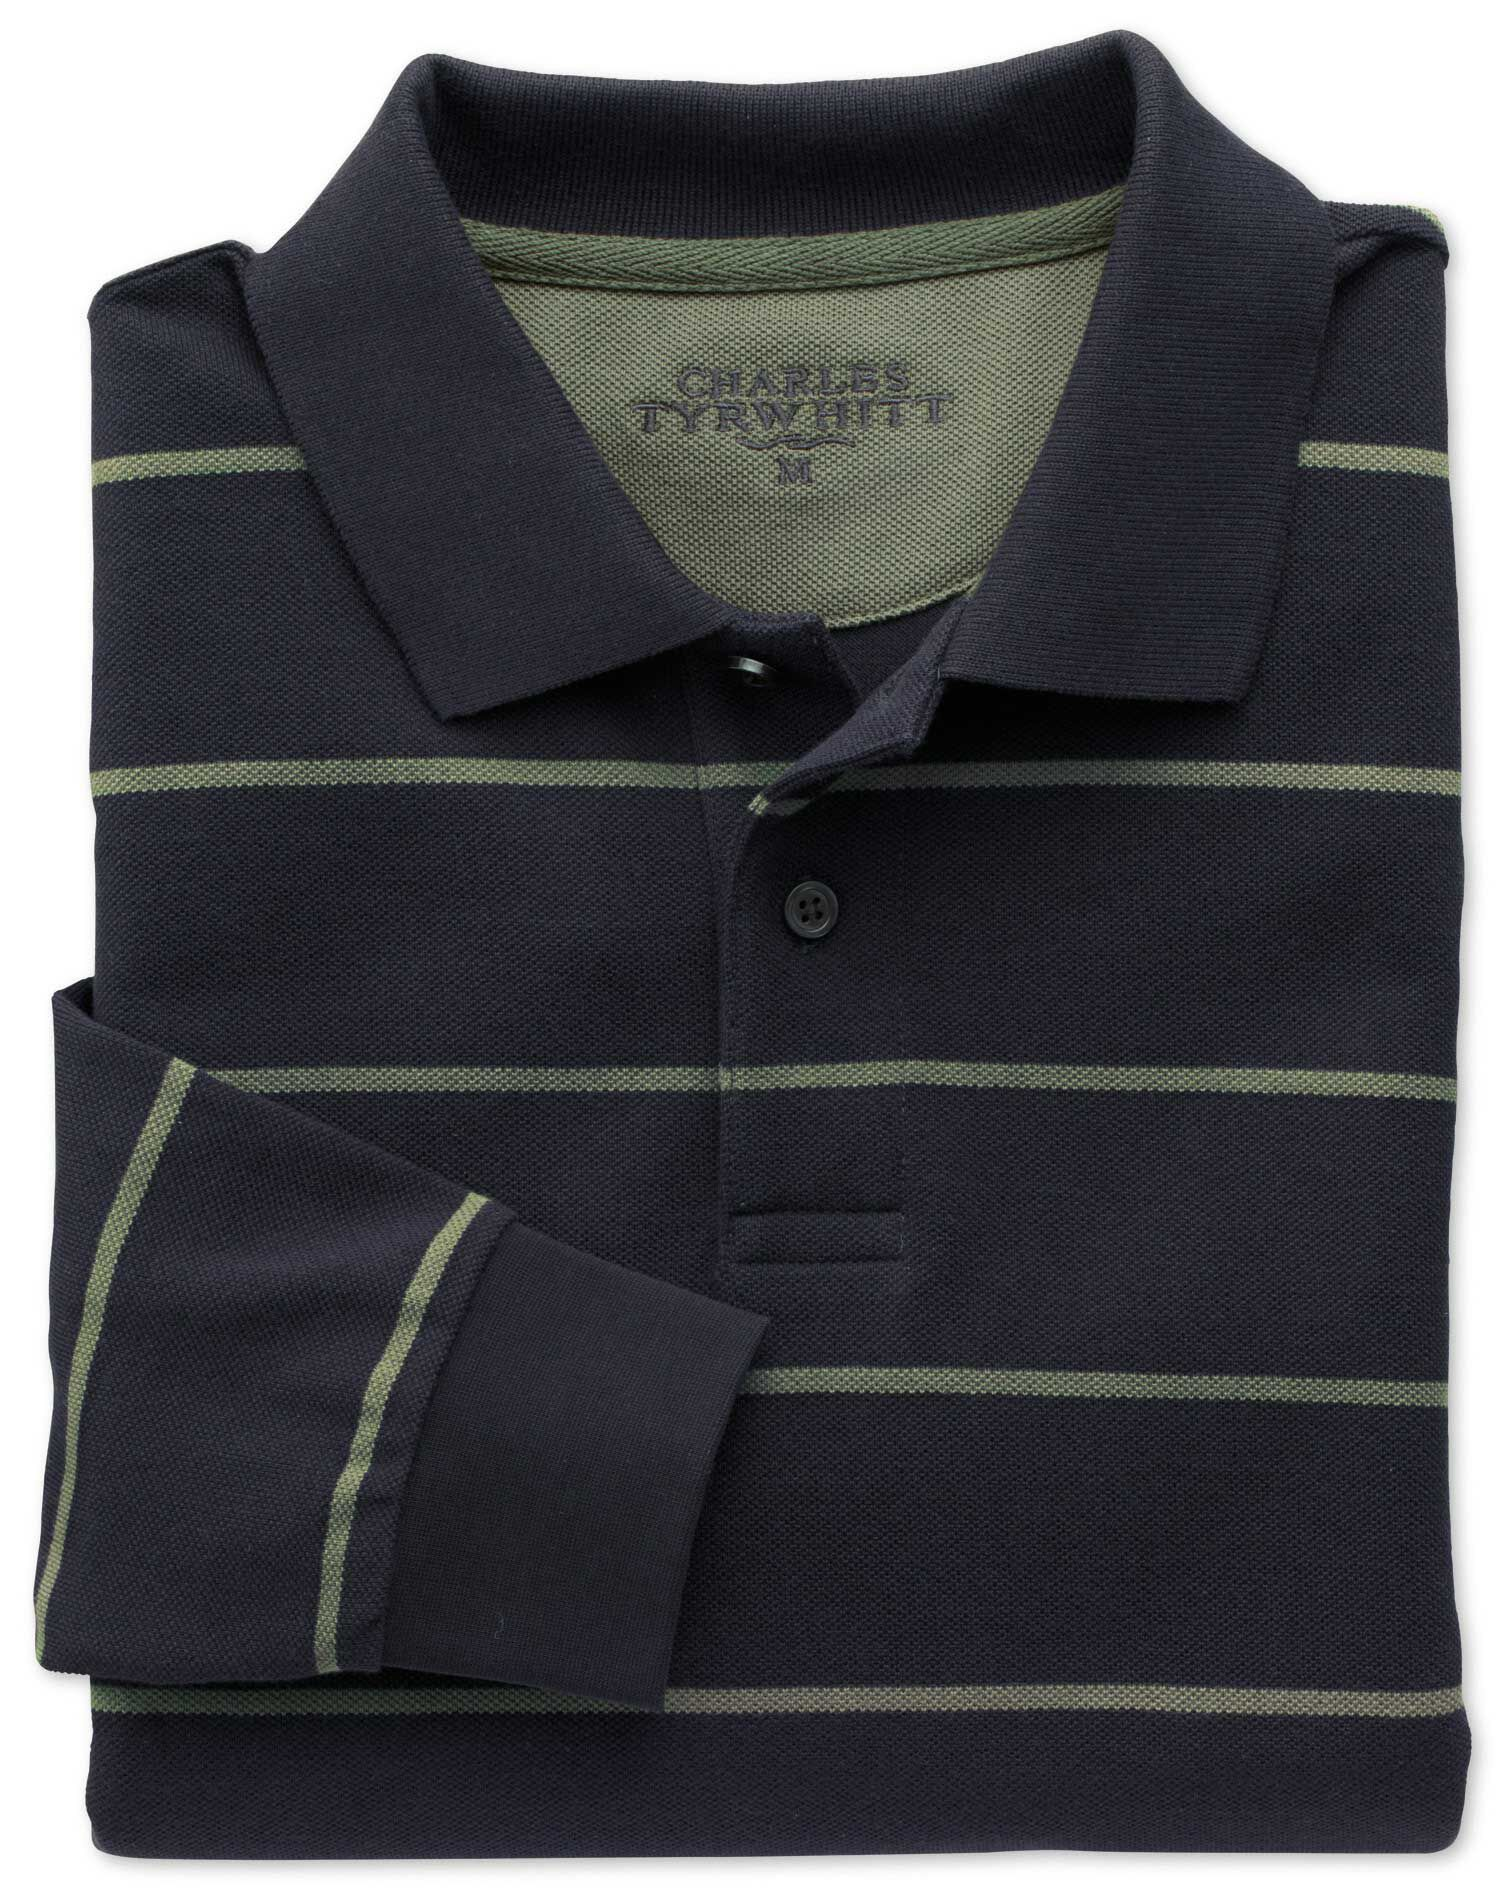 Navy and Green Stripe Pique Long Sleeve Cotton Polo Size XL by Charles Tyrwhitt